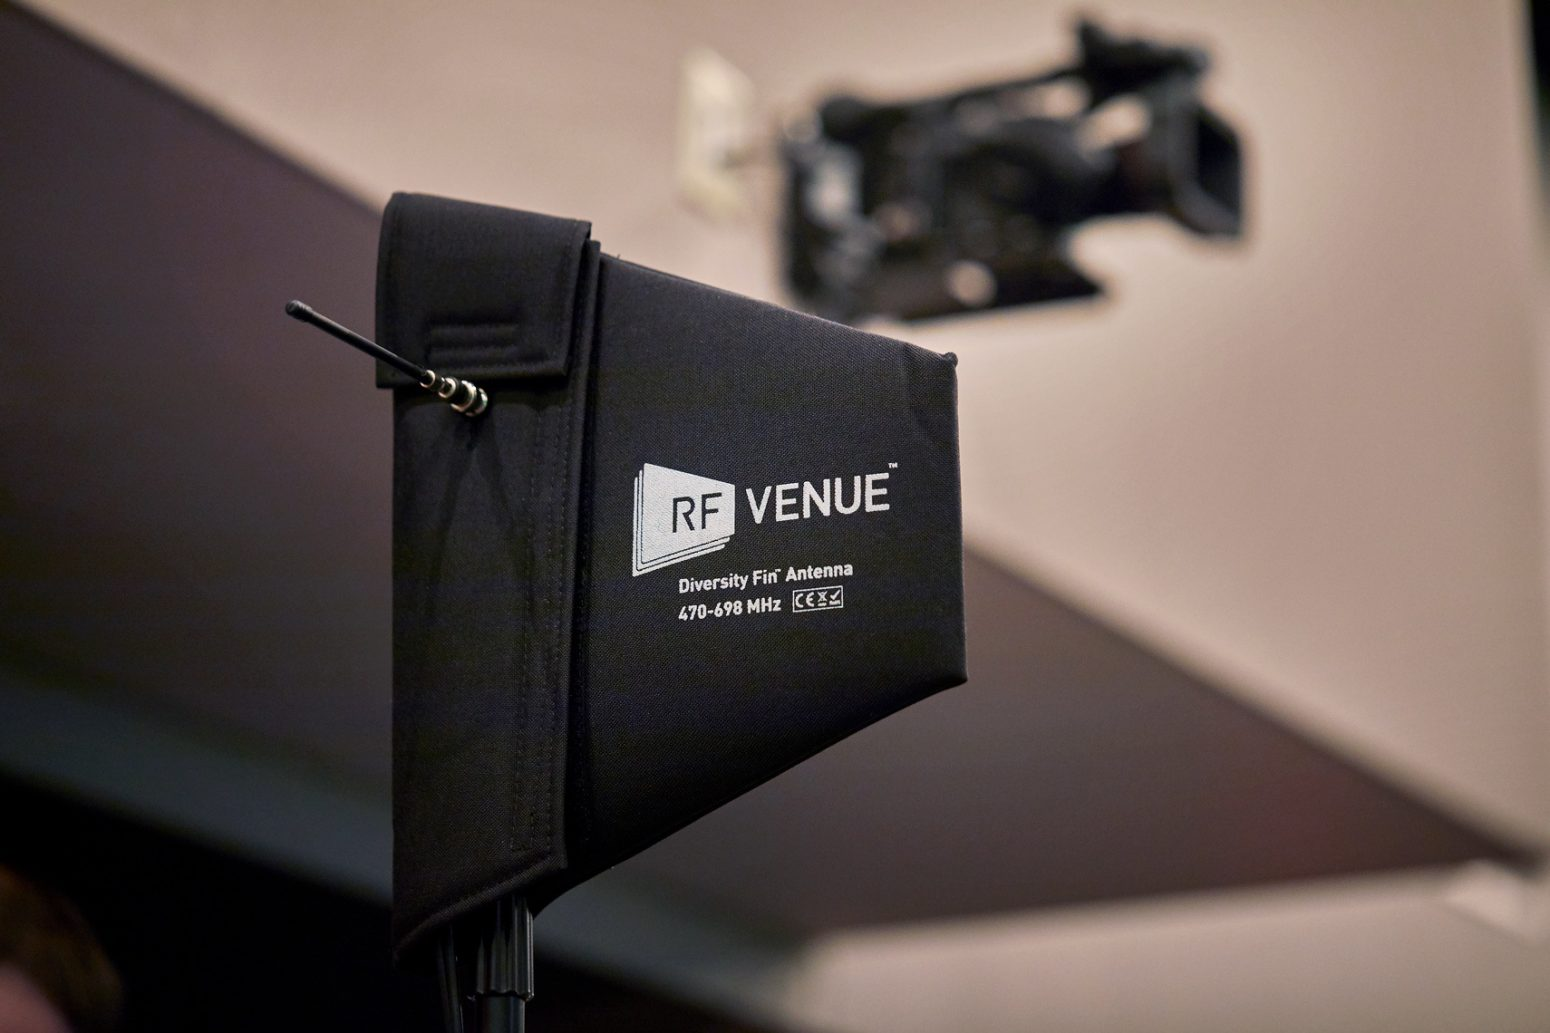 The audio design equipment Paragon relies on includes this RF Venue antenna.